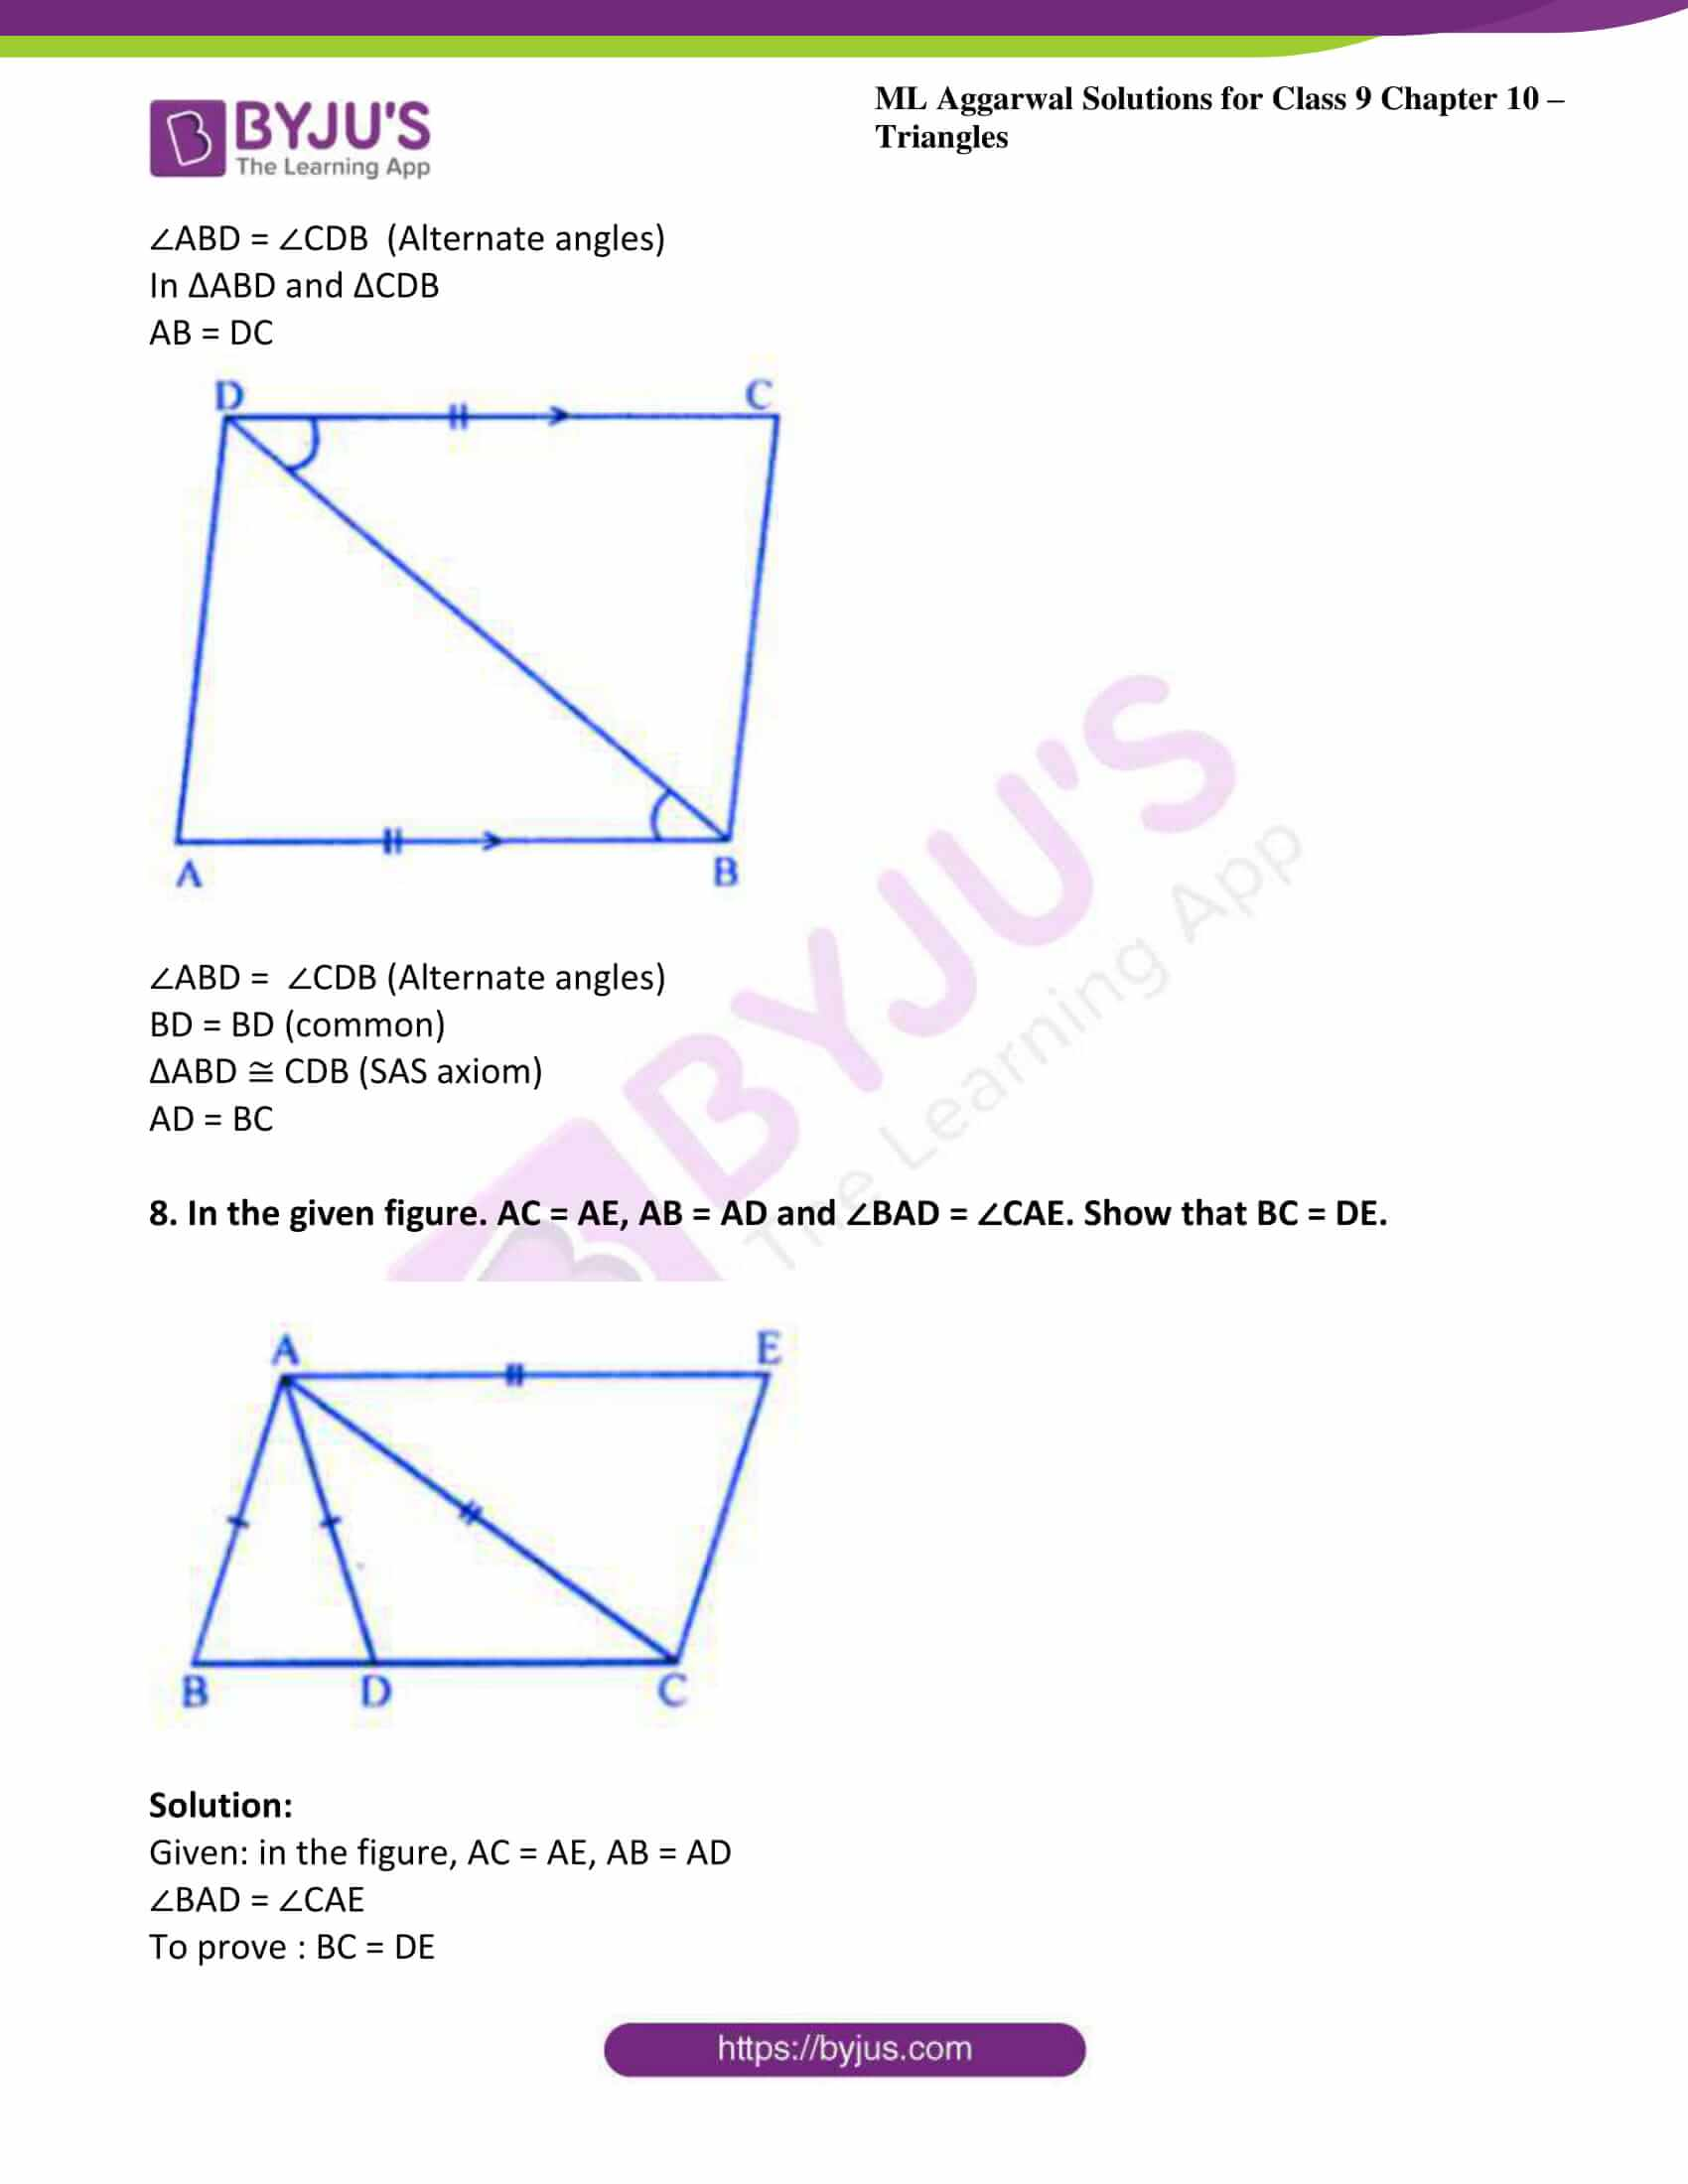 ml aggarwal solutions for class 9 maths chapter 10 06